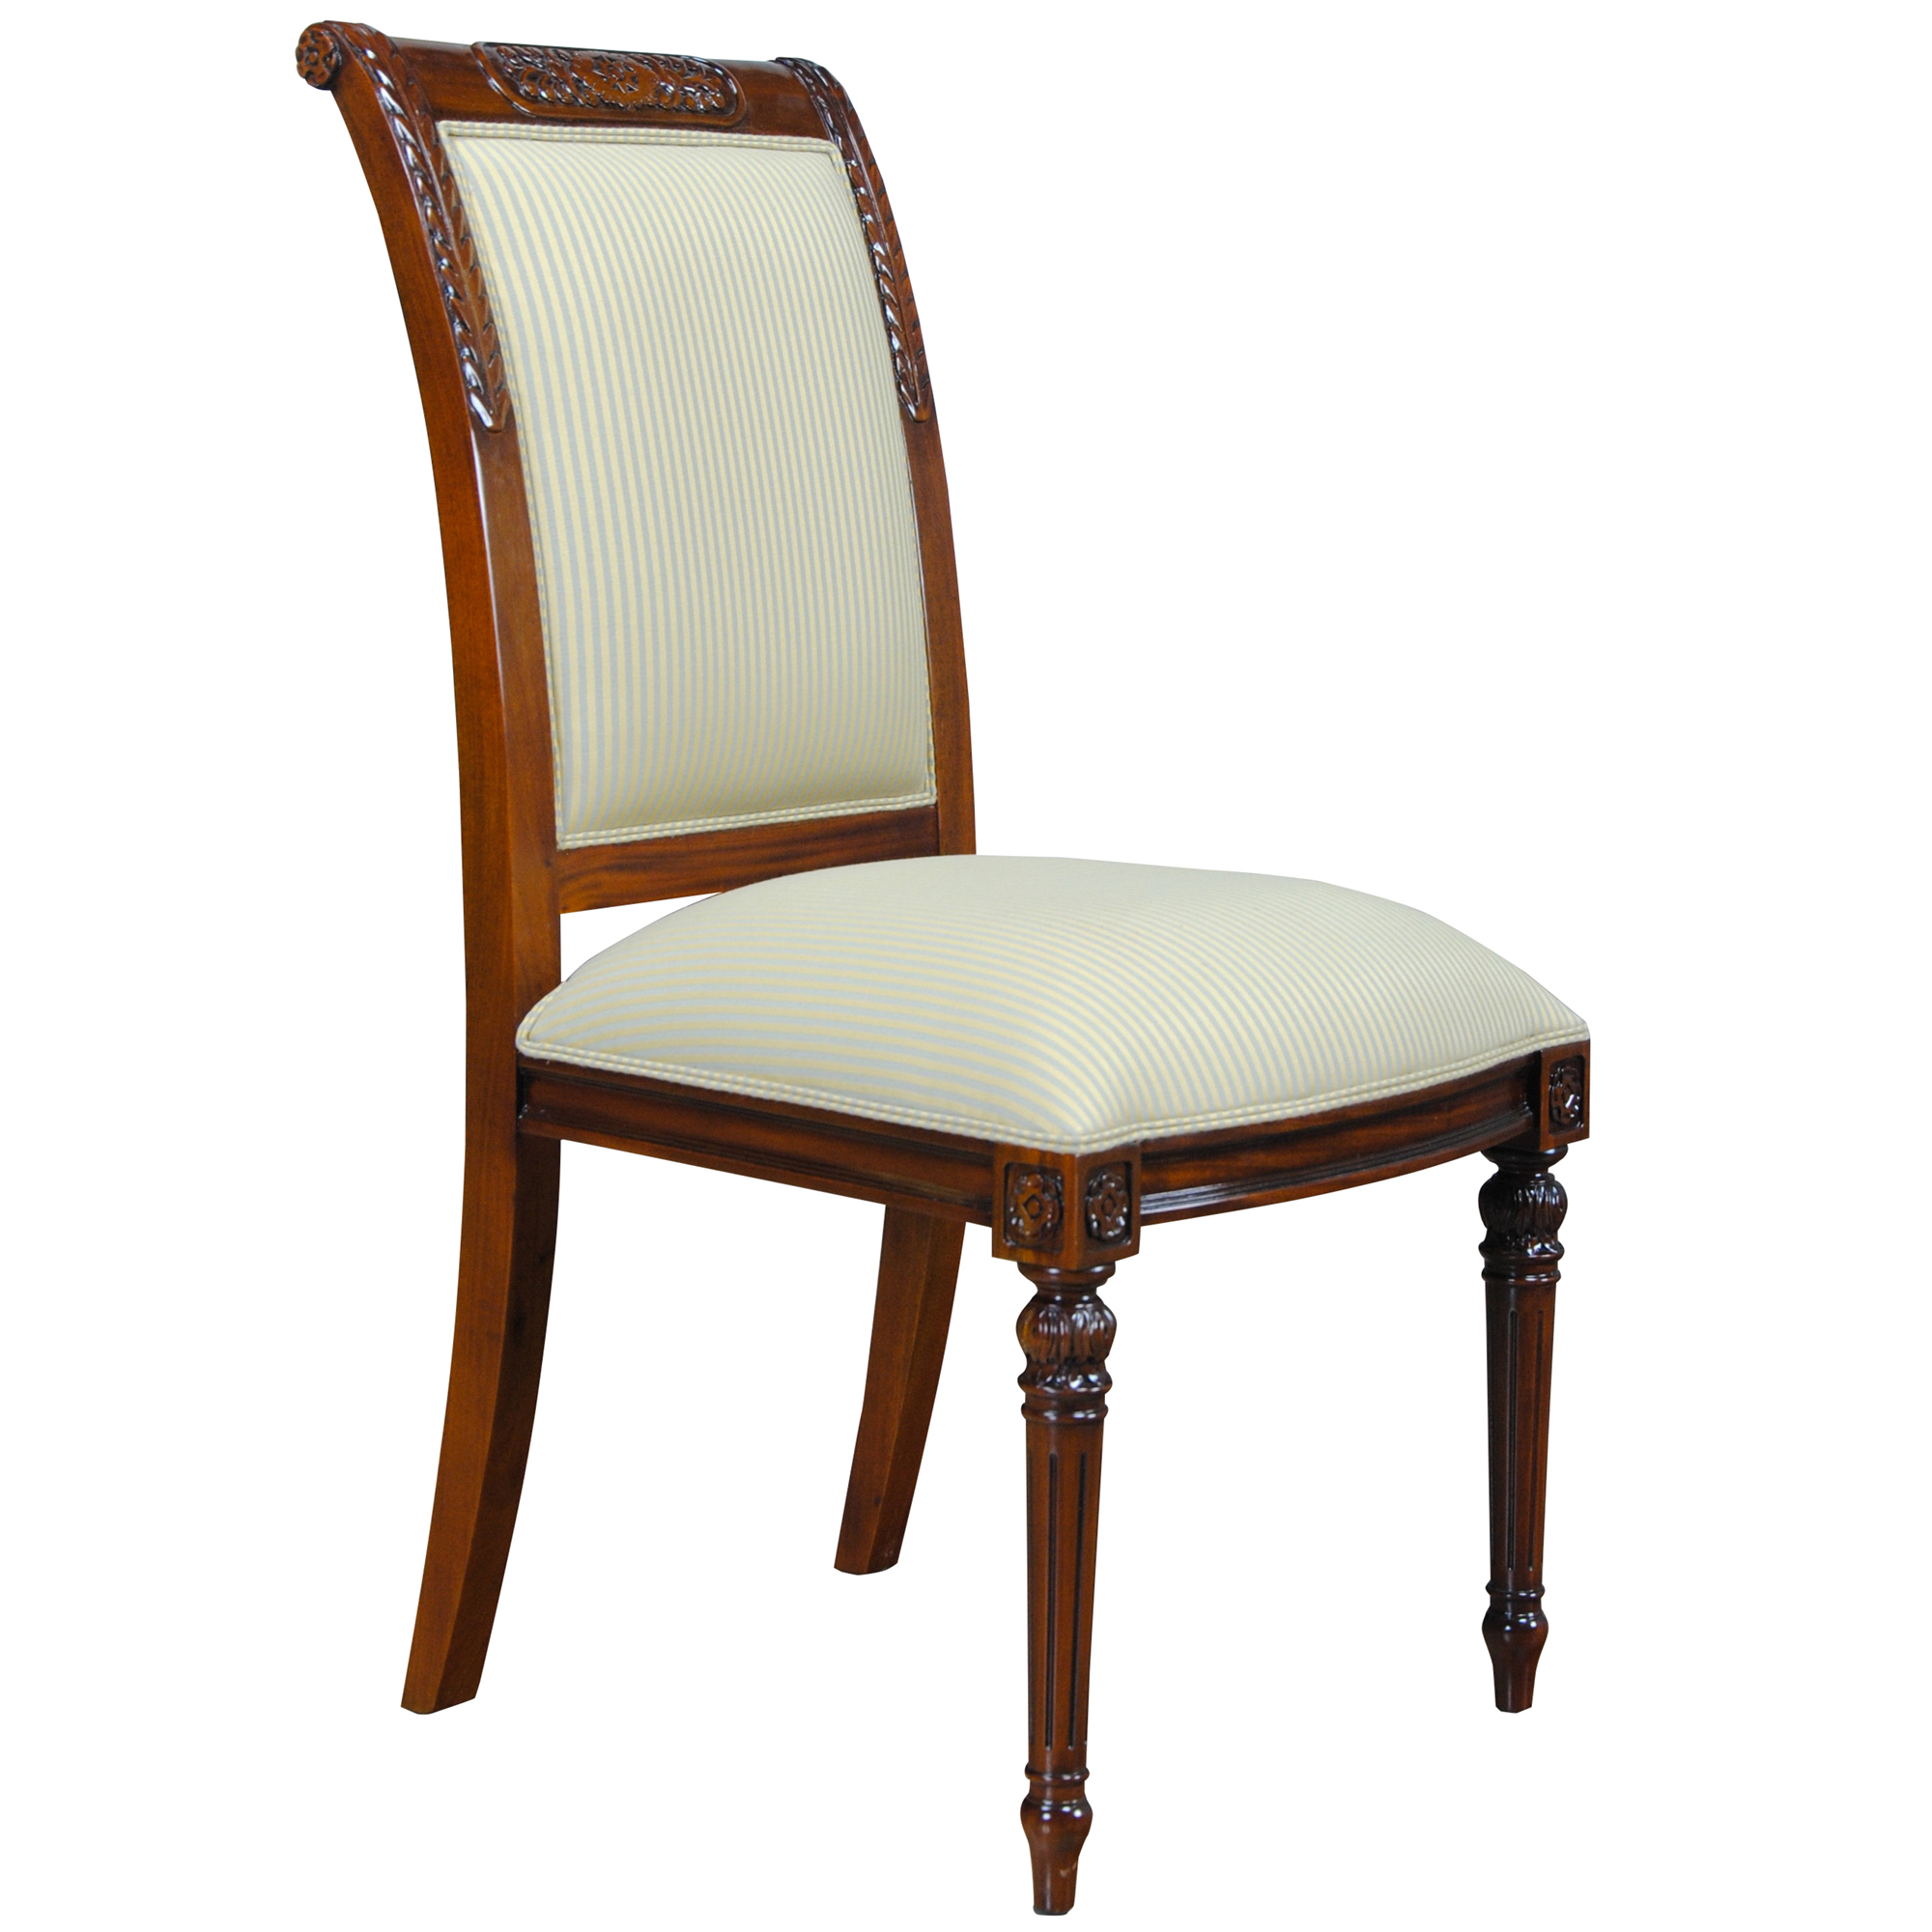 Carved Empire Upholstered Side Chair Niagara Furniture